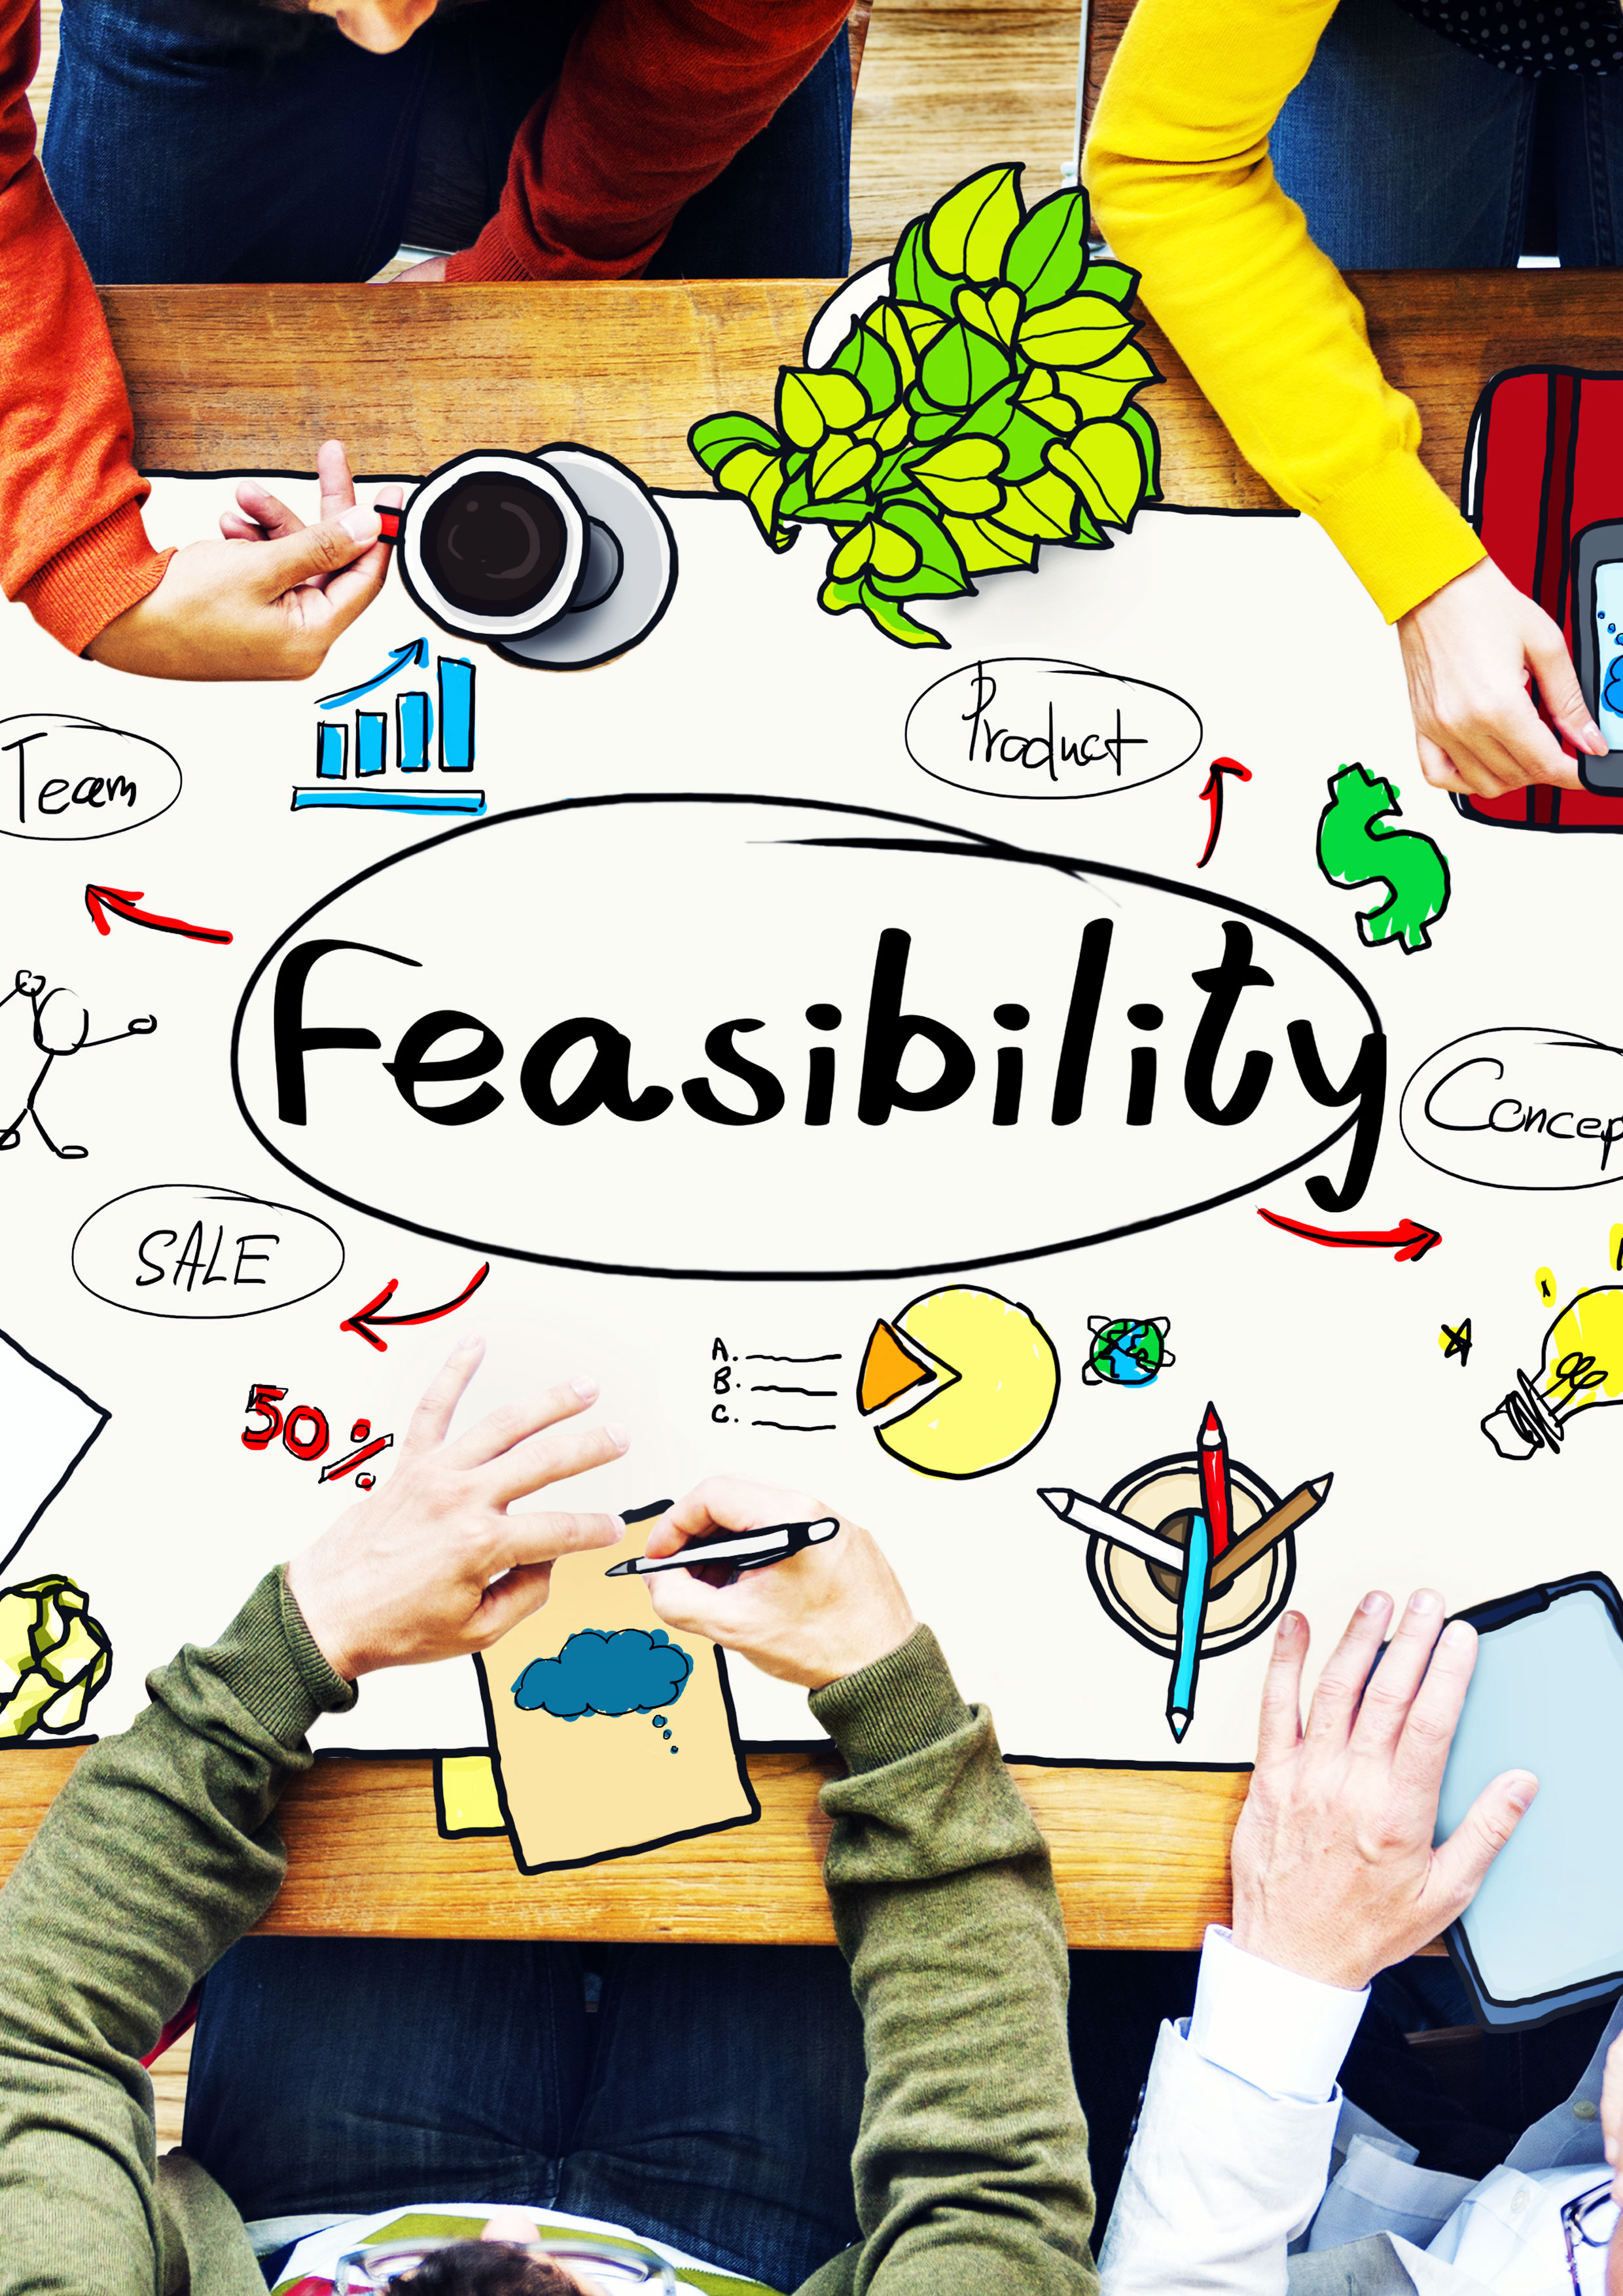 Feasibility Studies Preparation Analysis And Evaluation